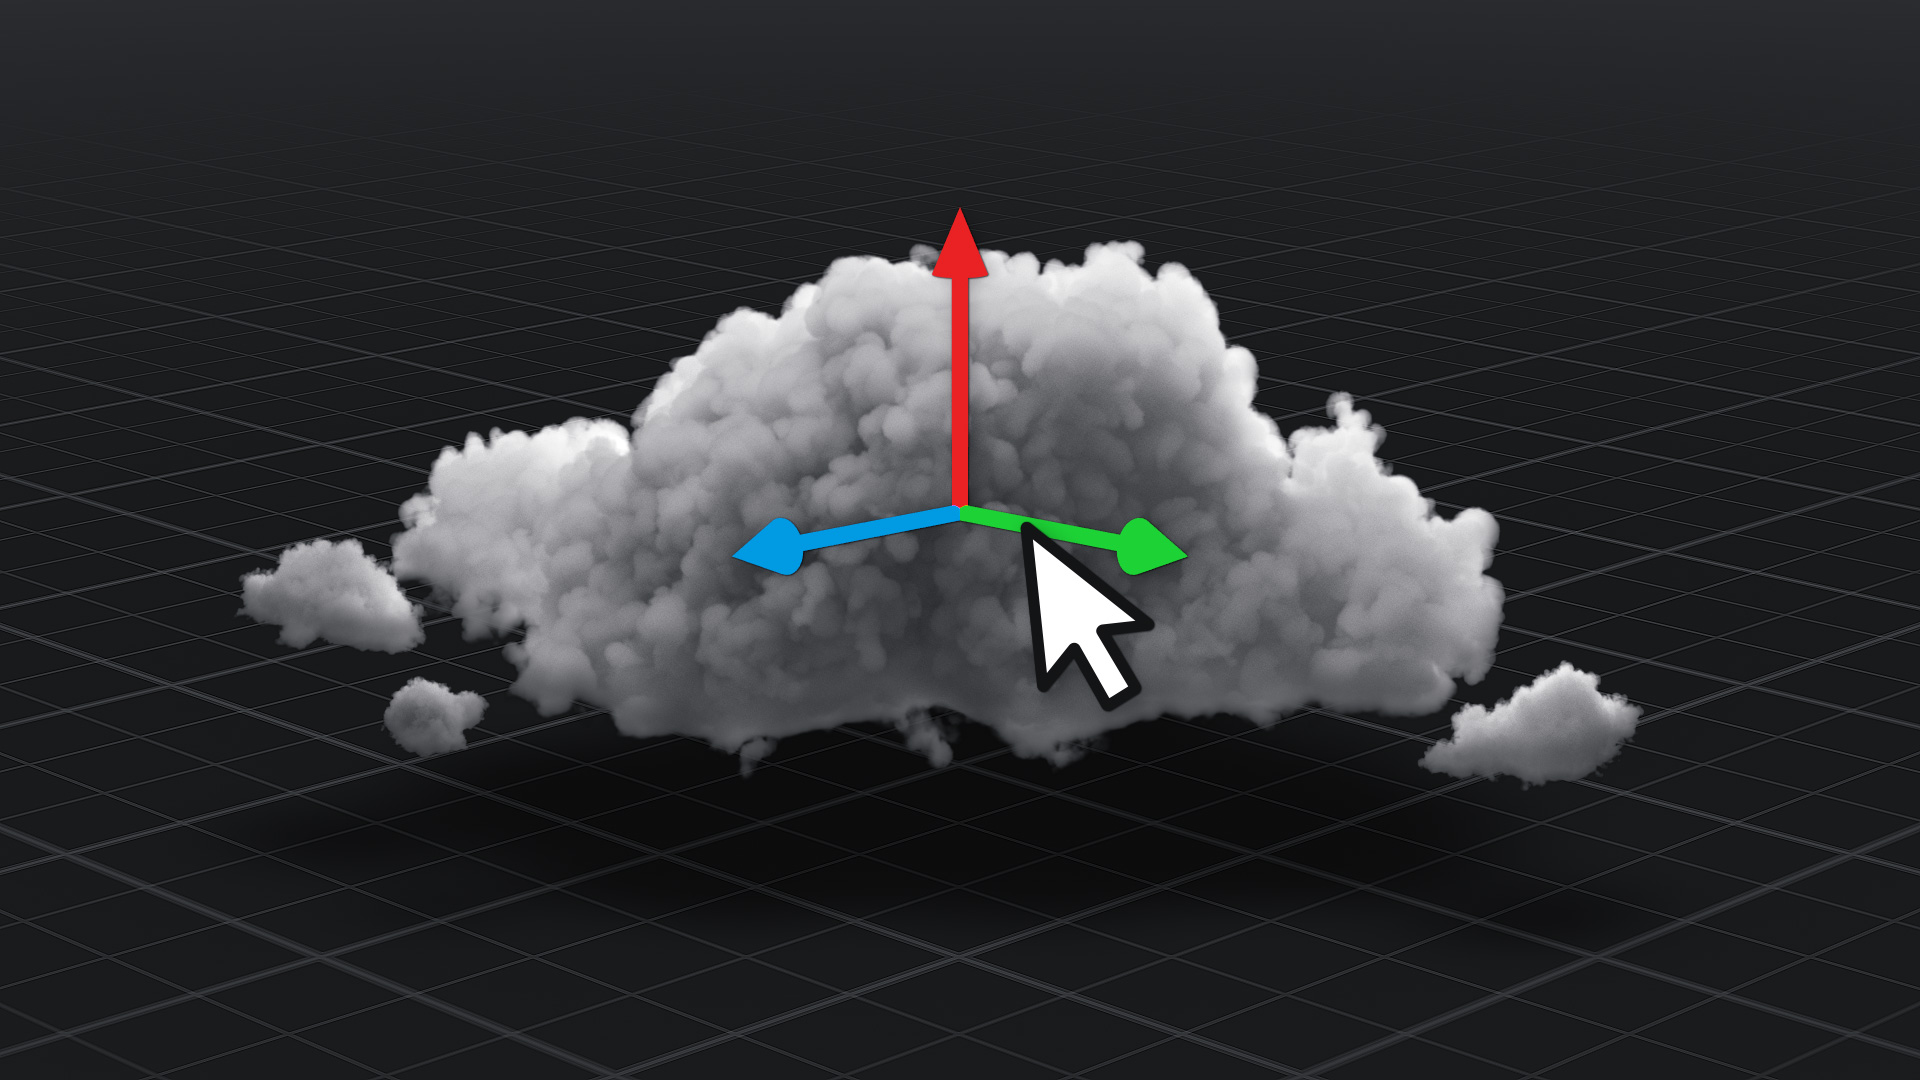 How to Use Cloud VDB's in Blender, Cinema4D, 3ds Max and more